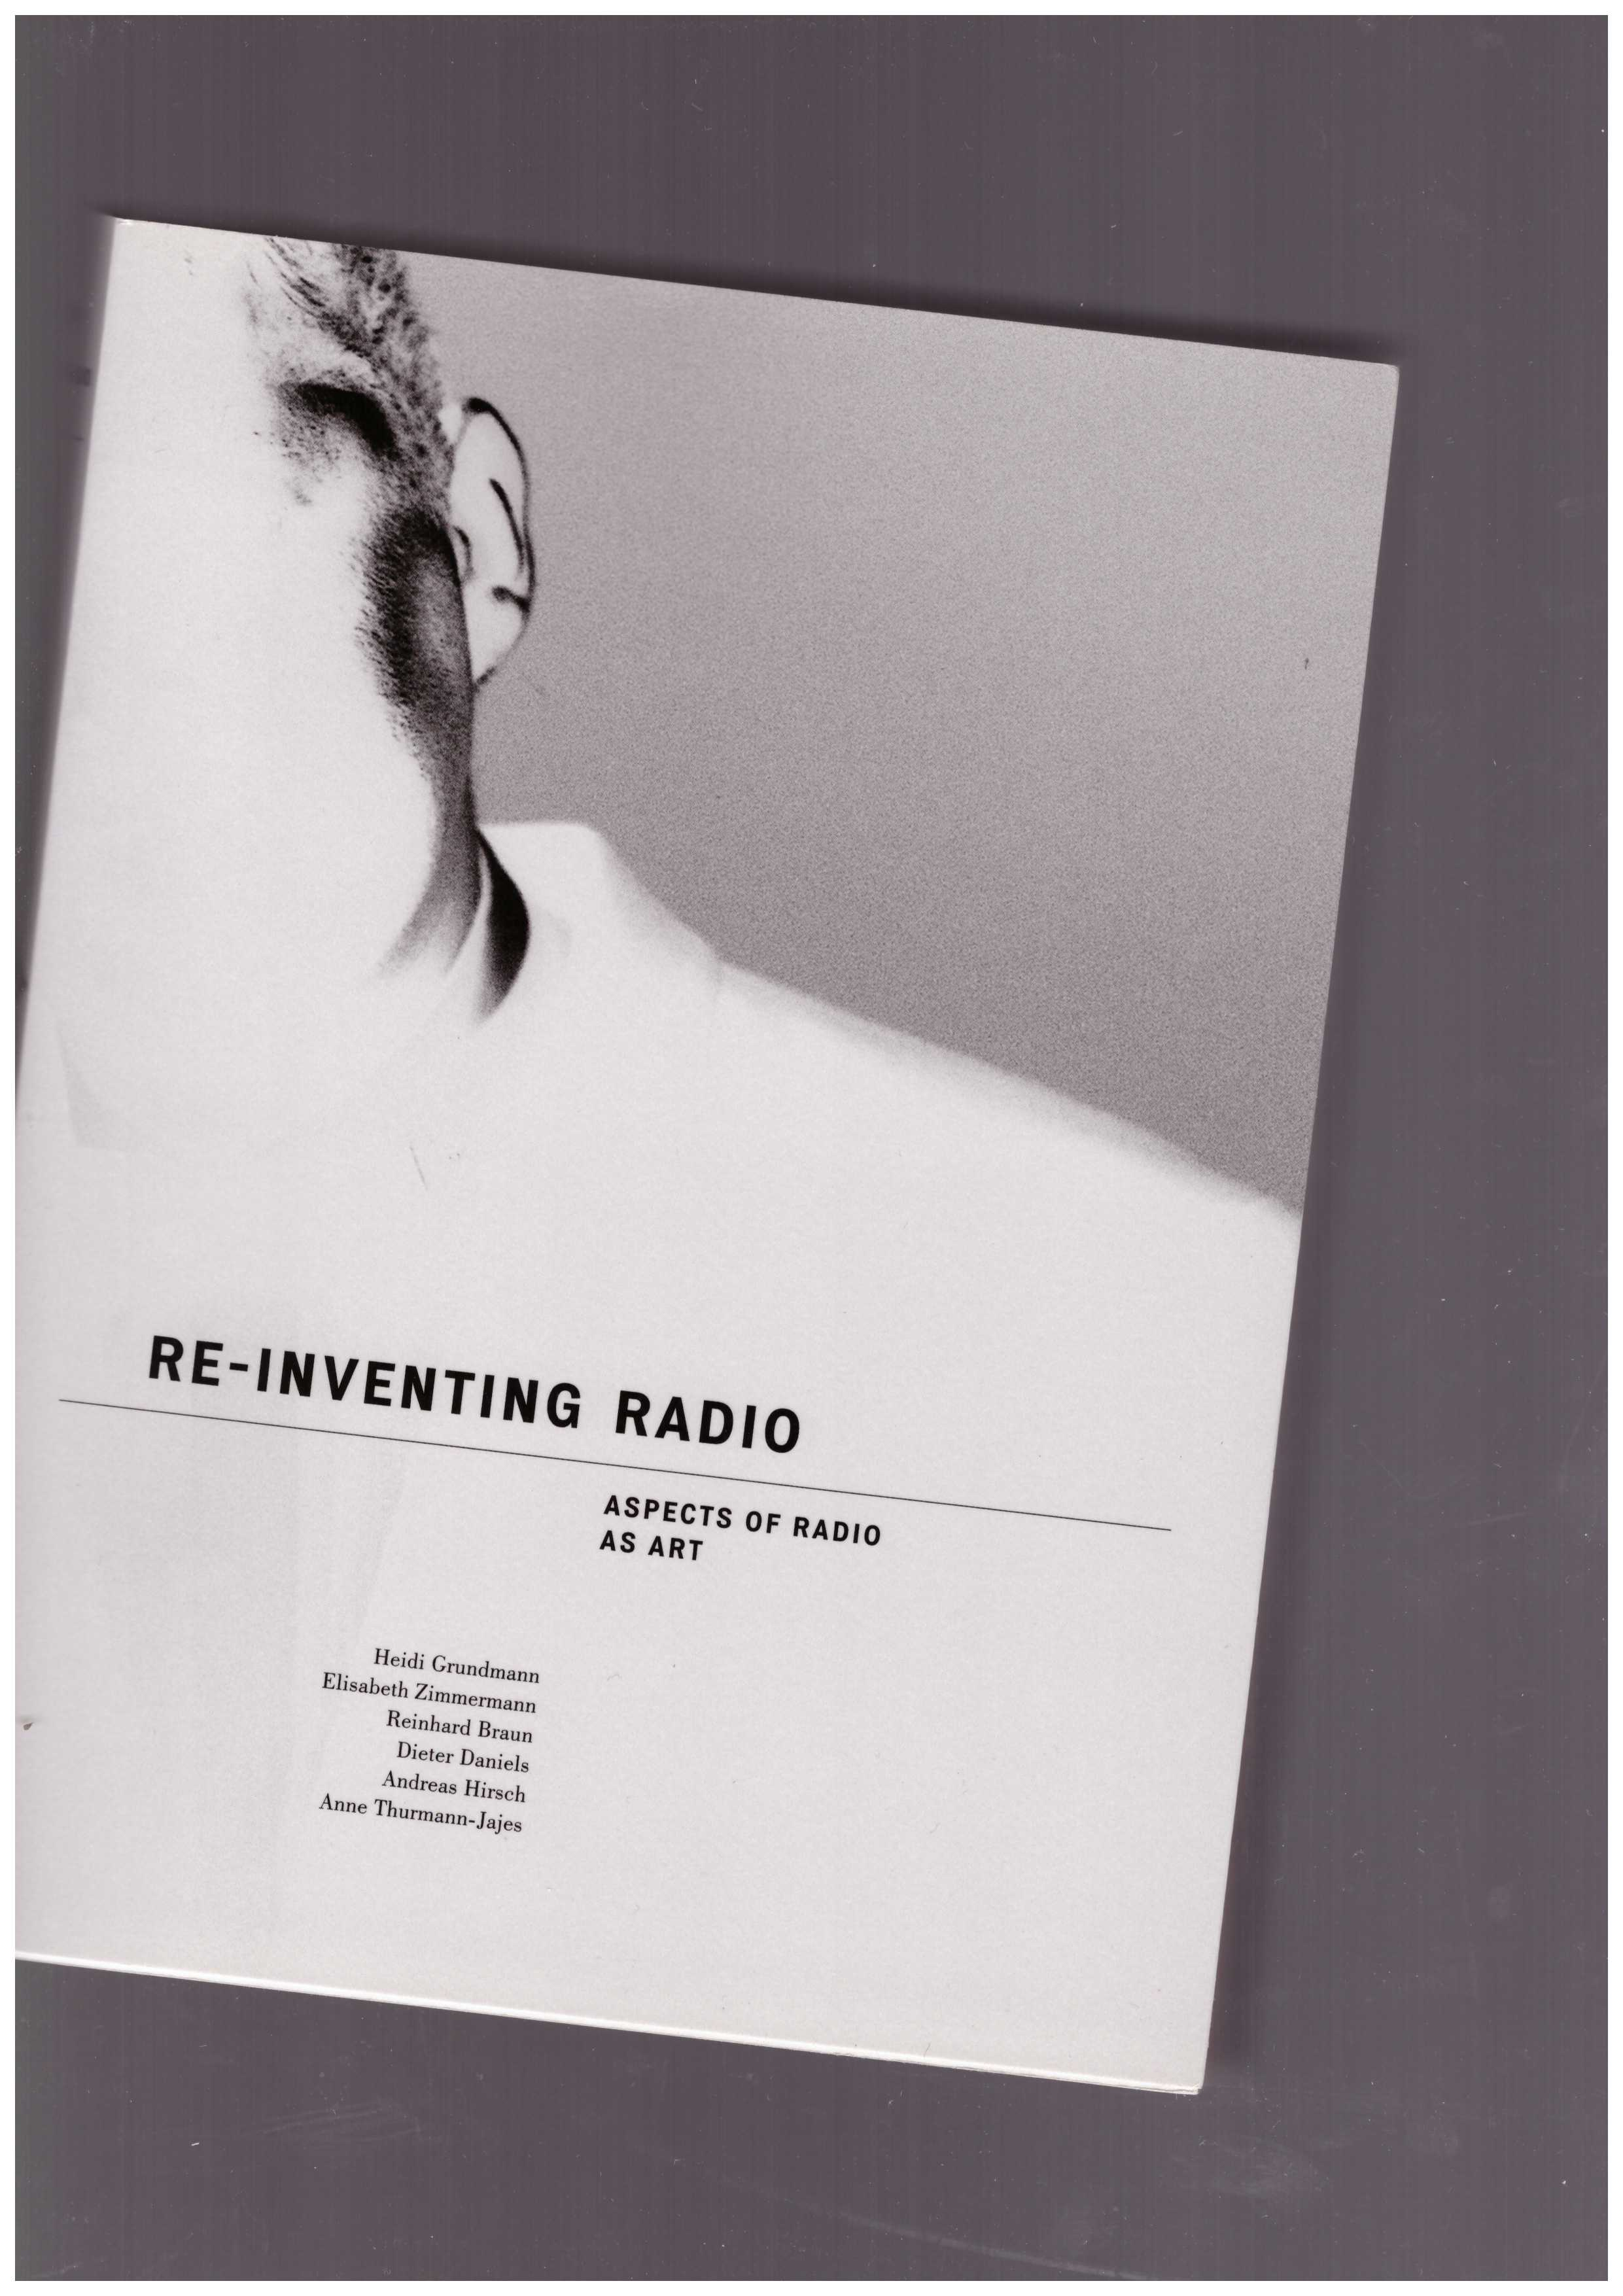 VARIOUS - Re-Inventing Radio. Aspects of Radio as Art